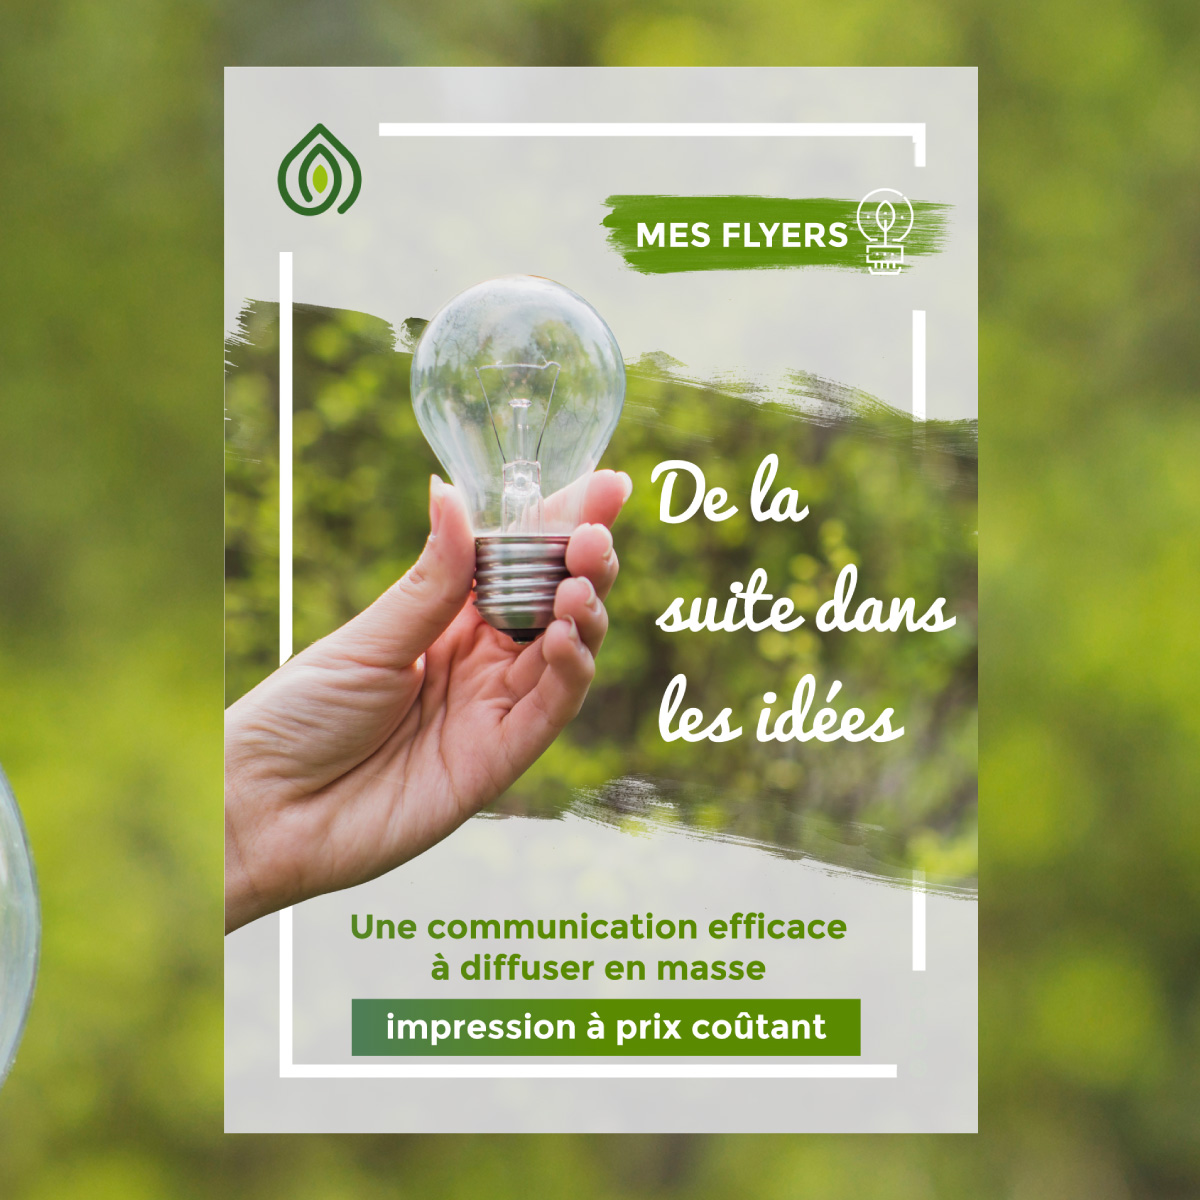 //designwebcreation.fr/wp-content/uploads/2018/03/FLyers-conception.jpg